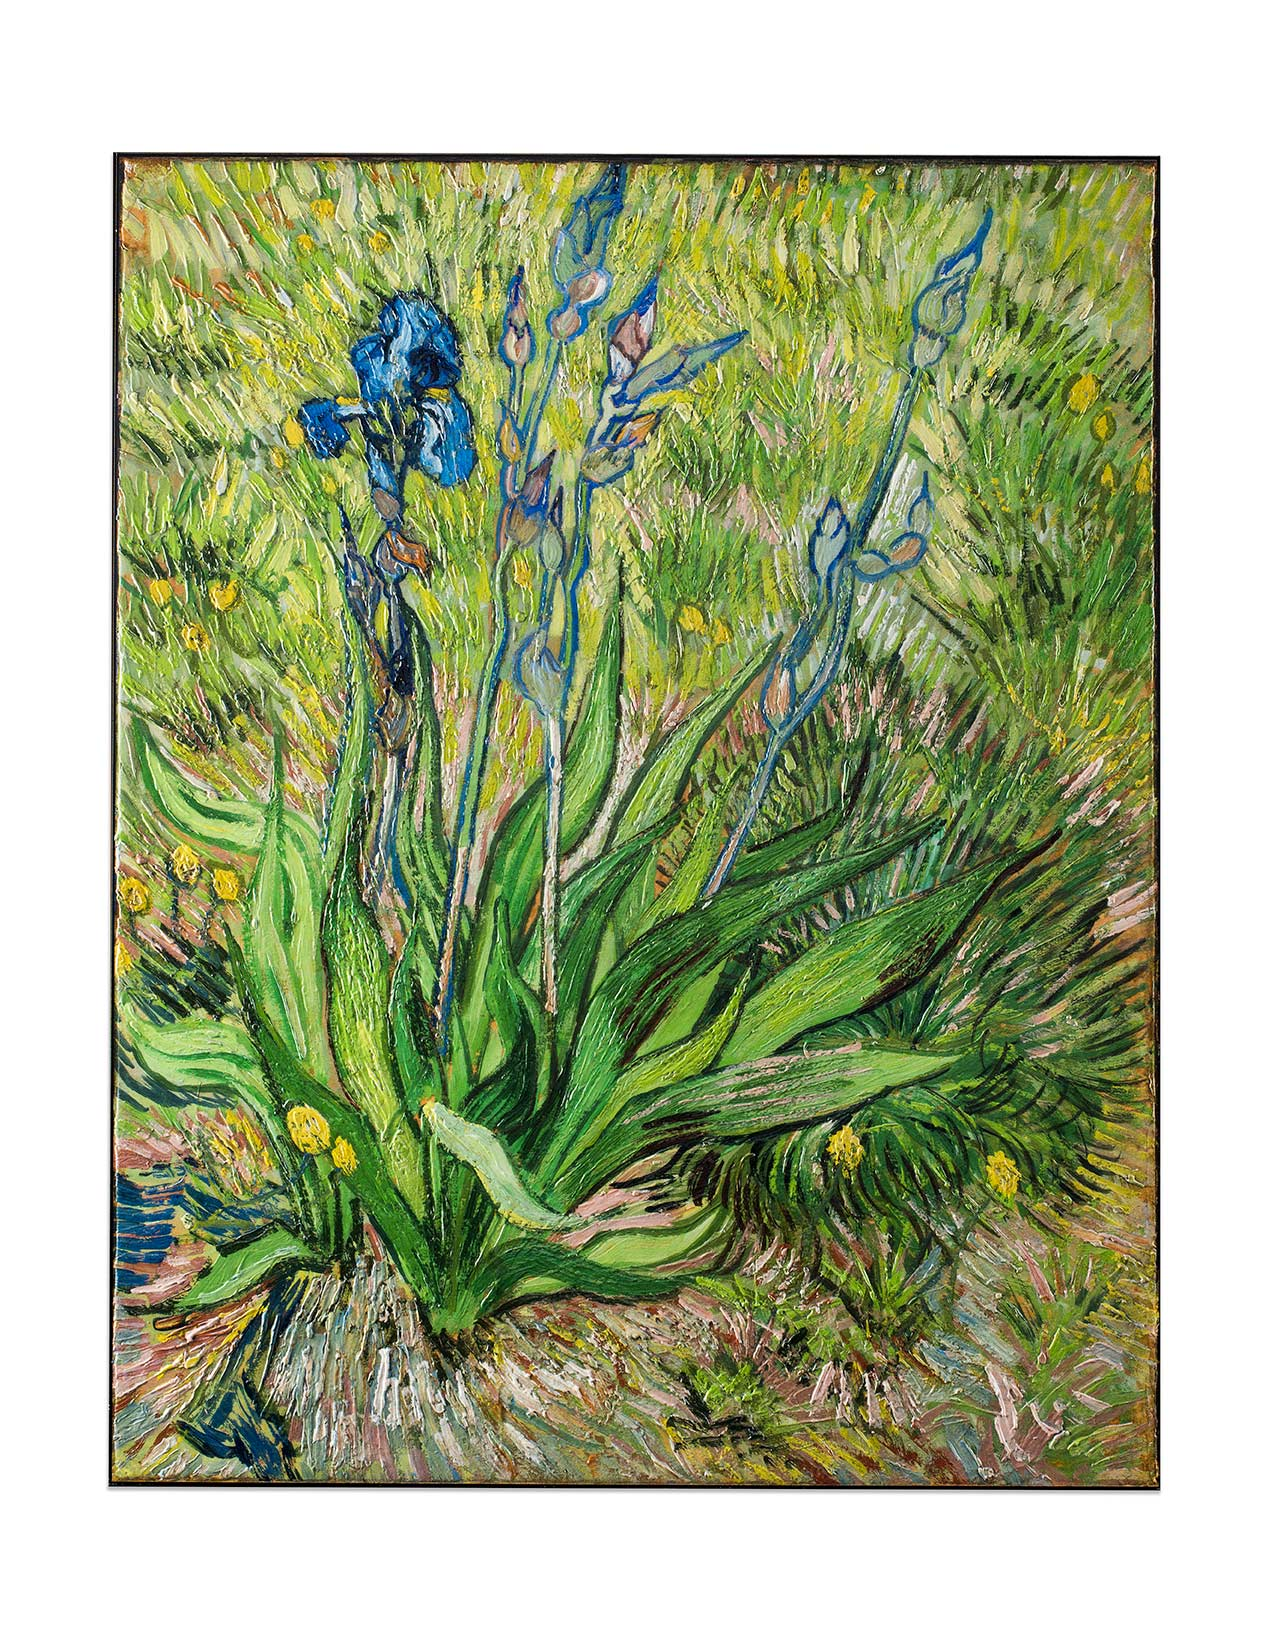 Buy a 3D Reproduction of Iris by Van Gogh, with Verus Art® Re-Creations